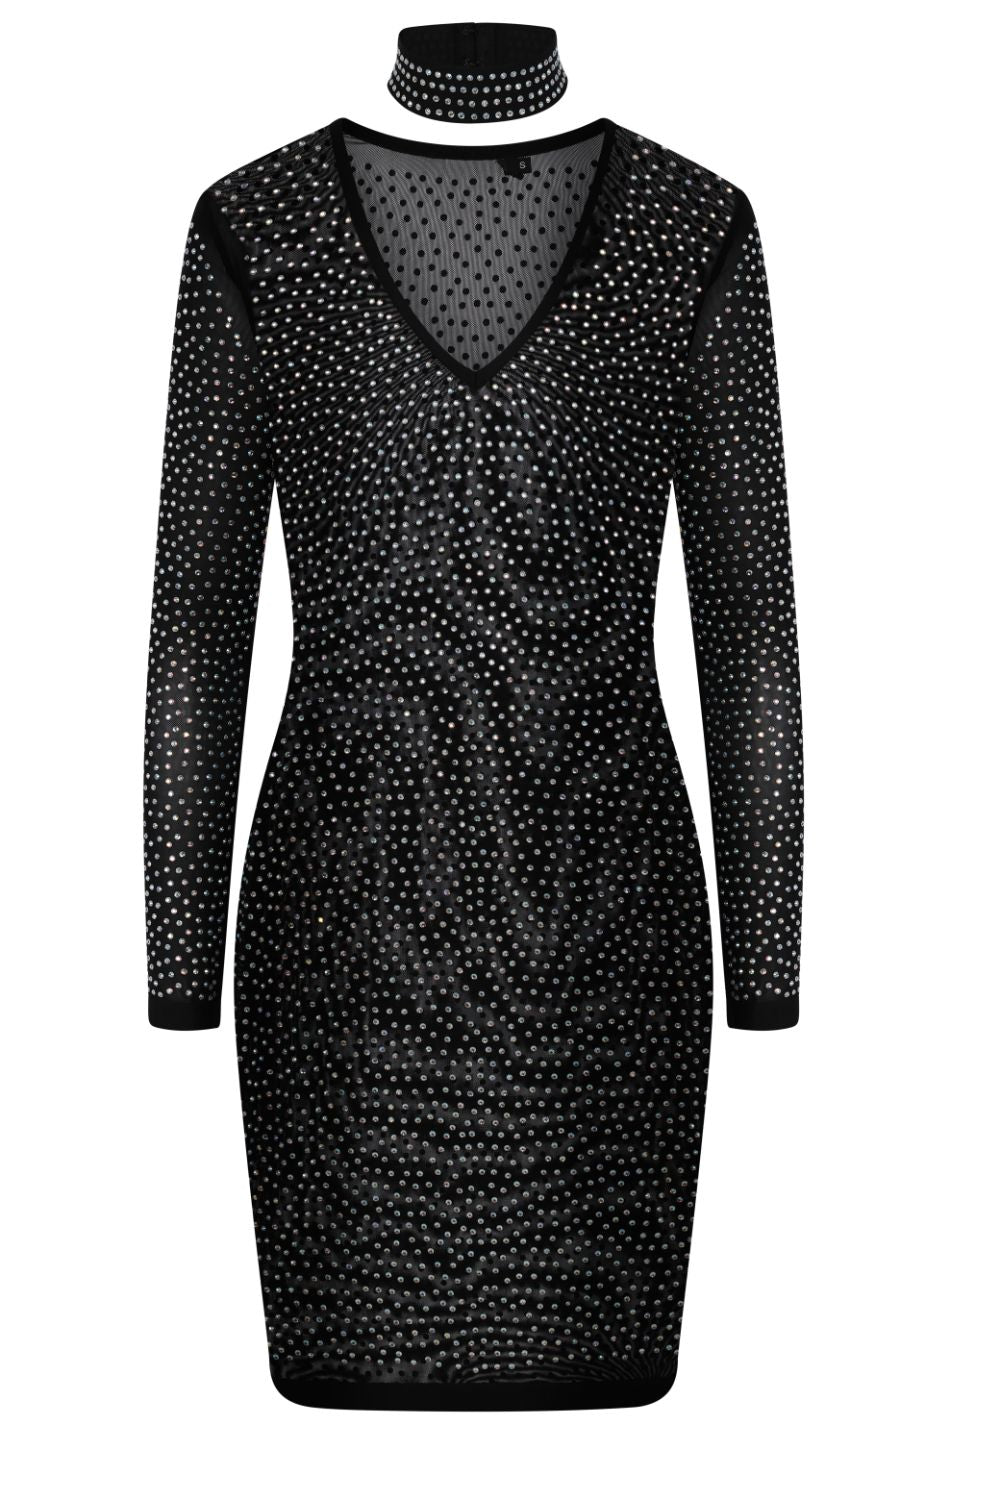 Show Up Black Crystal Rhinestone Sheer Mesh Choker Bodycon Dress